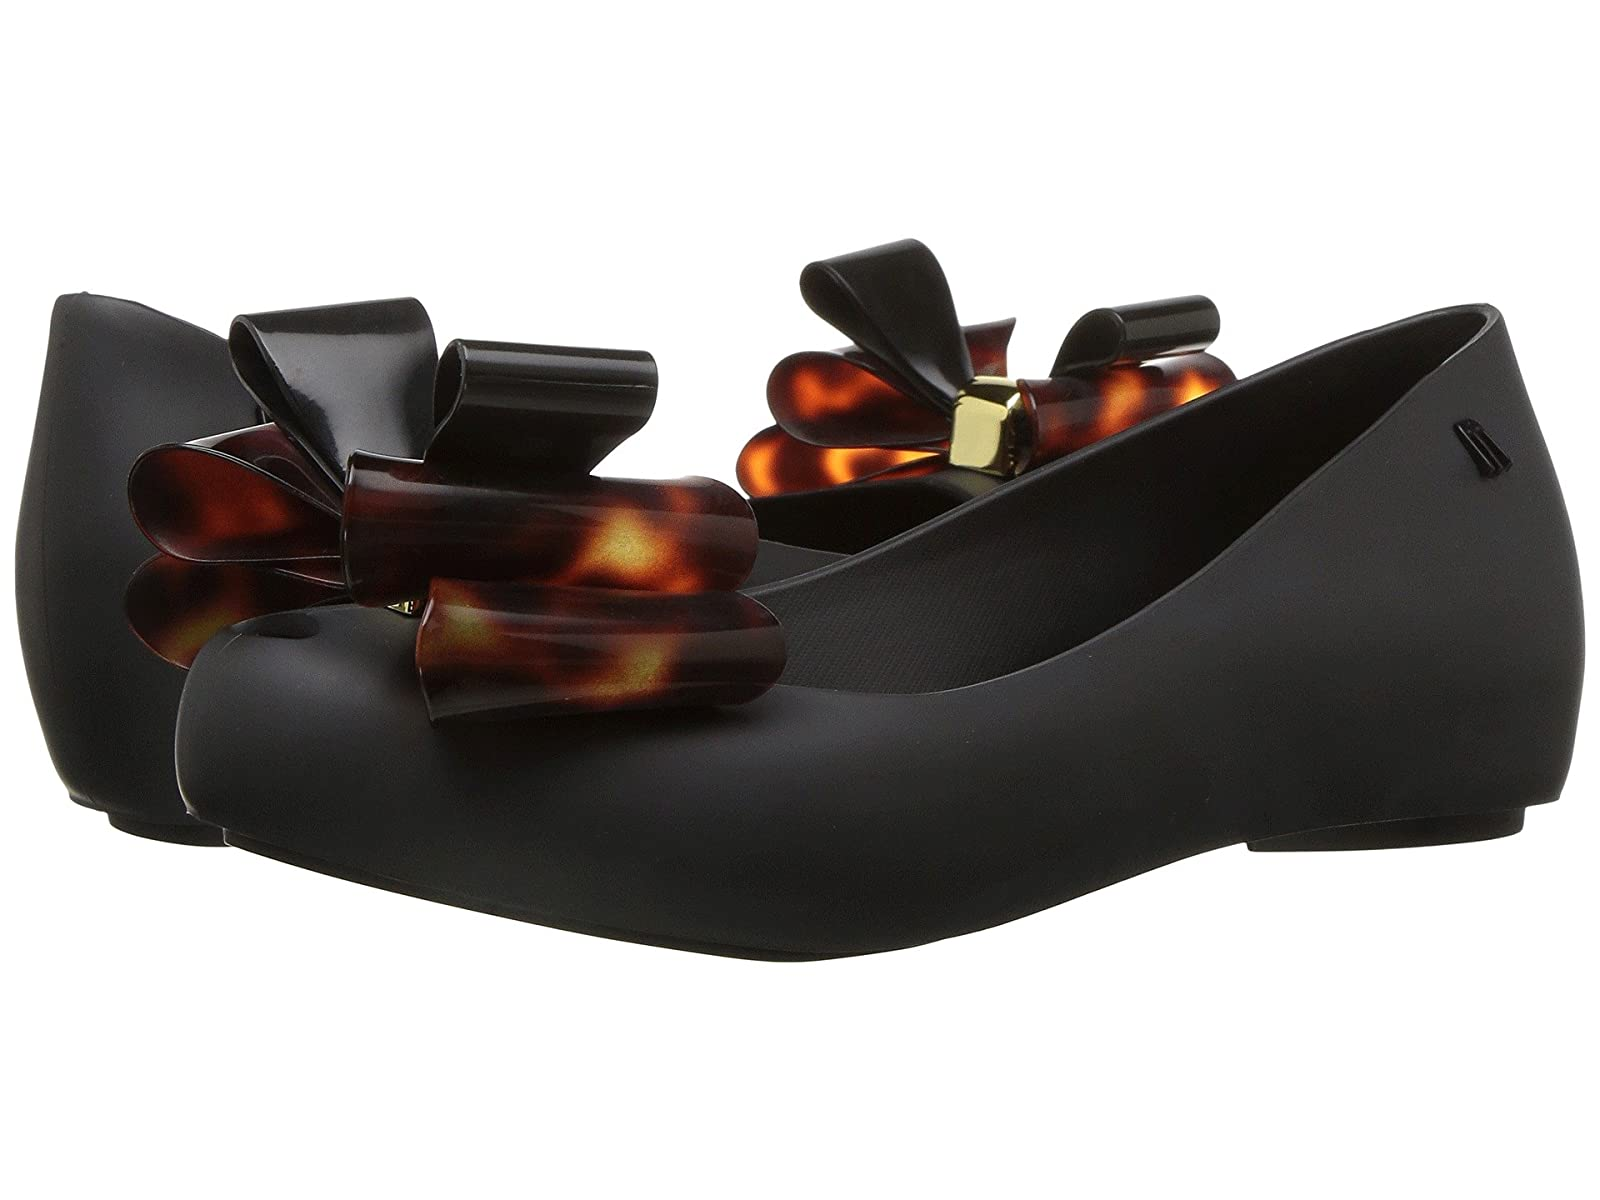 Melissa Shoes Ultragirl Sweet XIICheap and distinctive eye-catching shoes